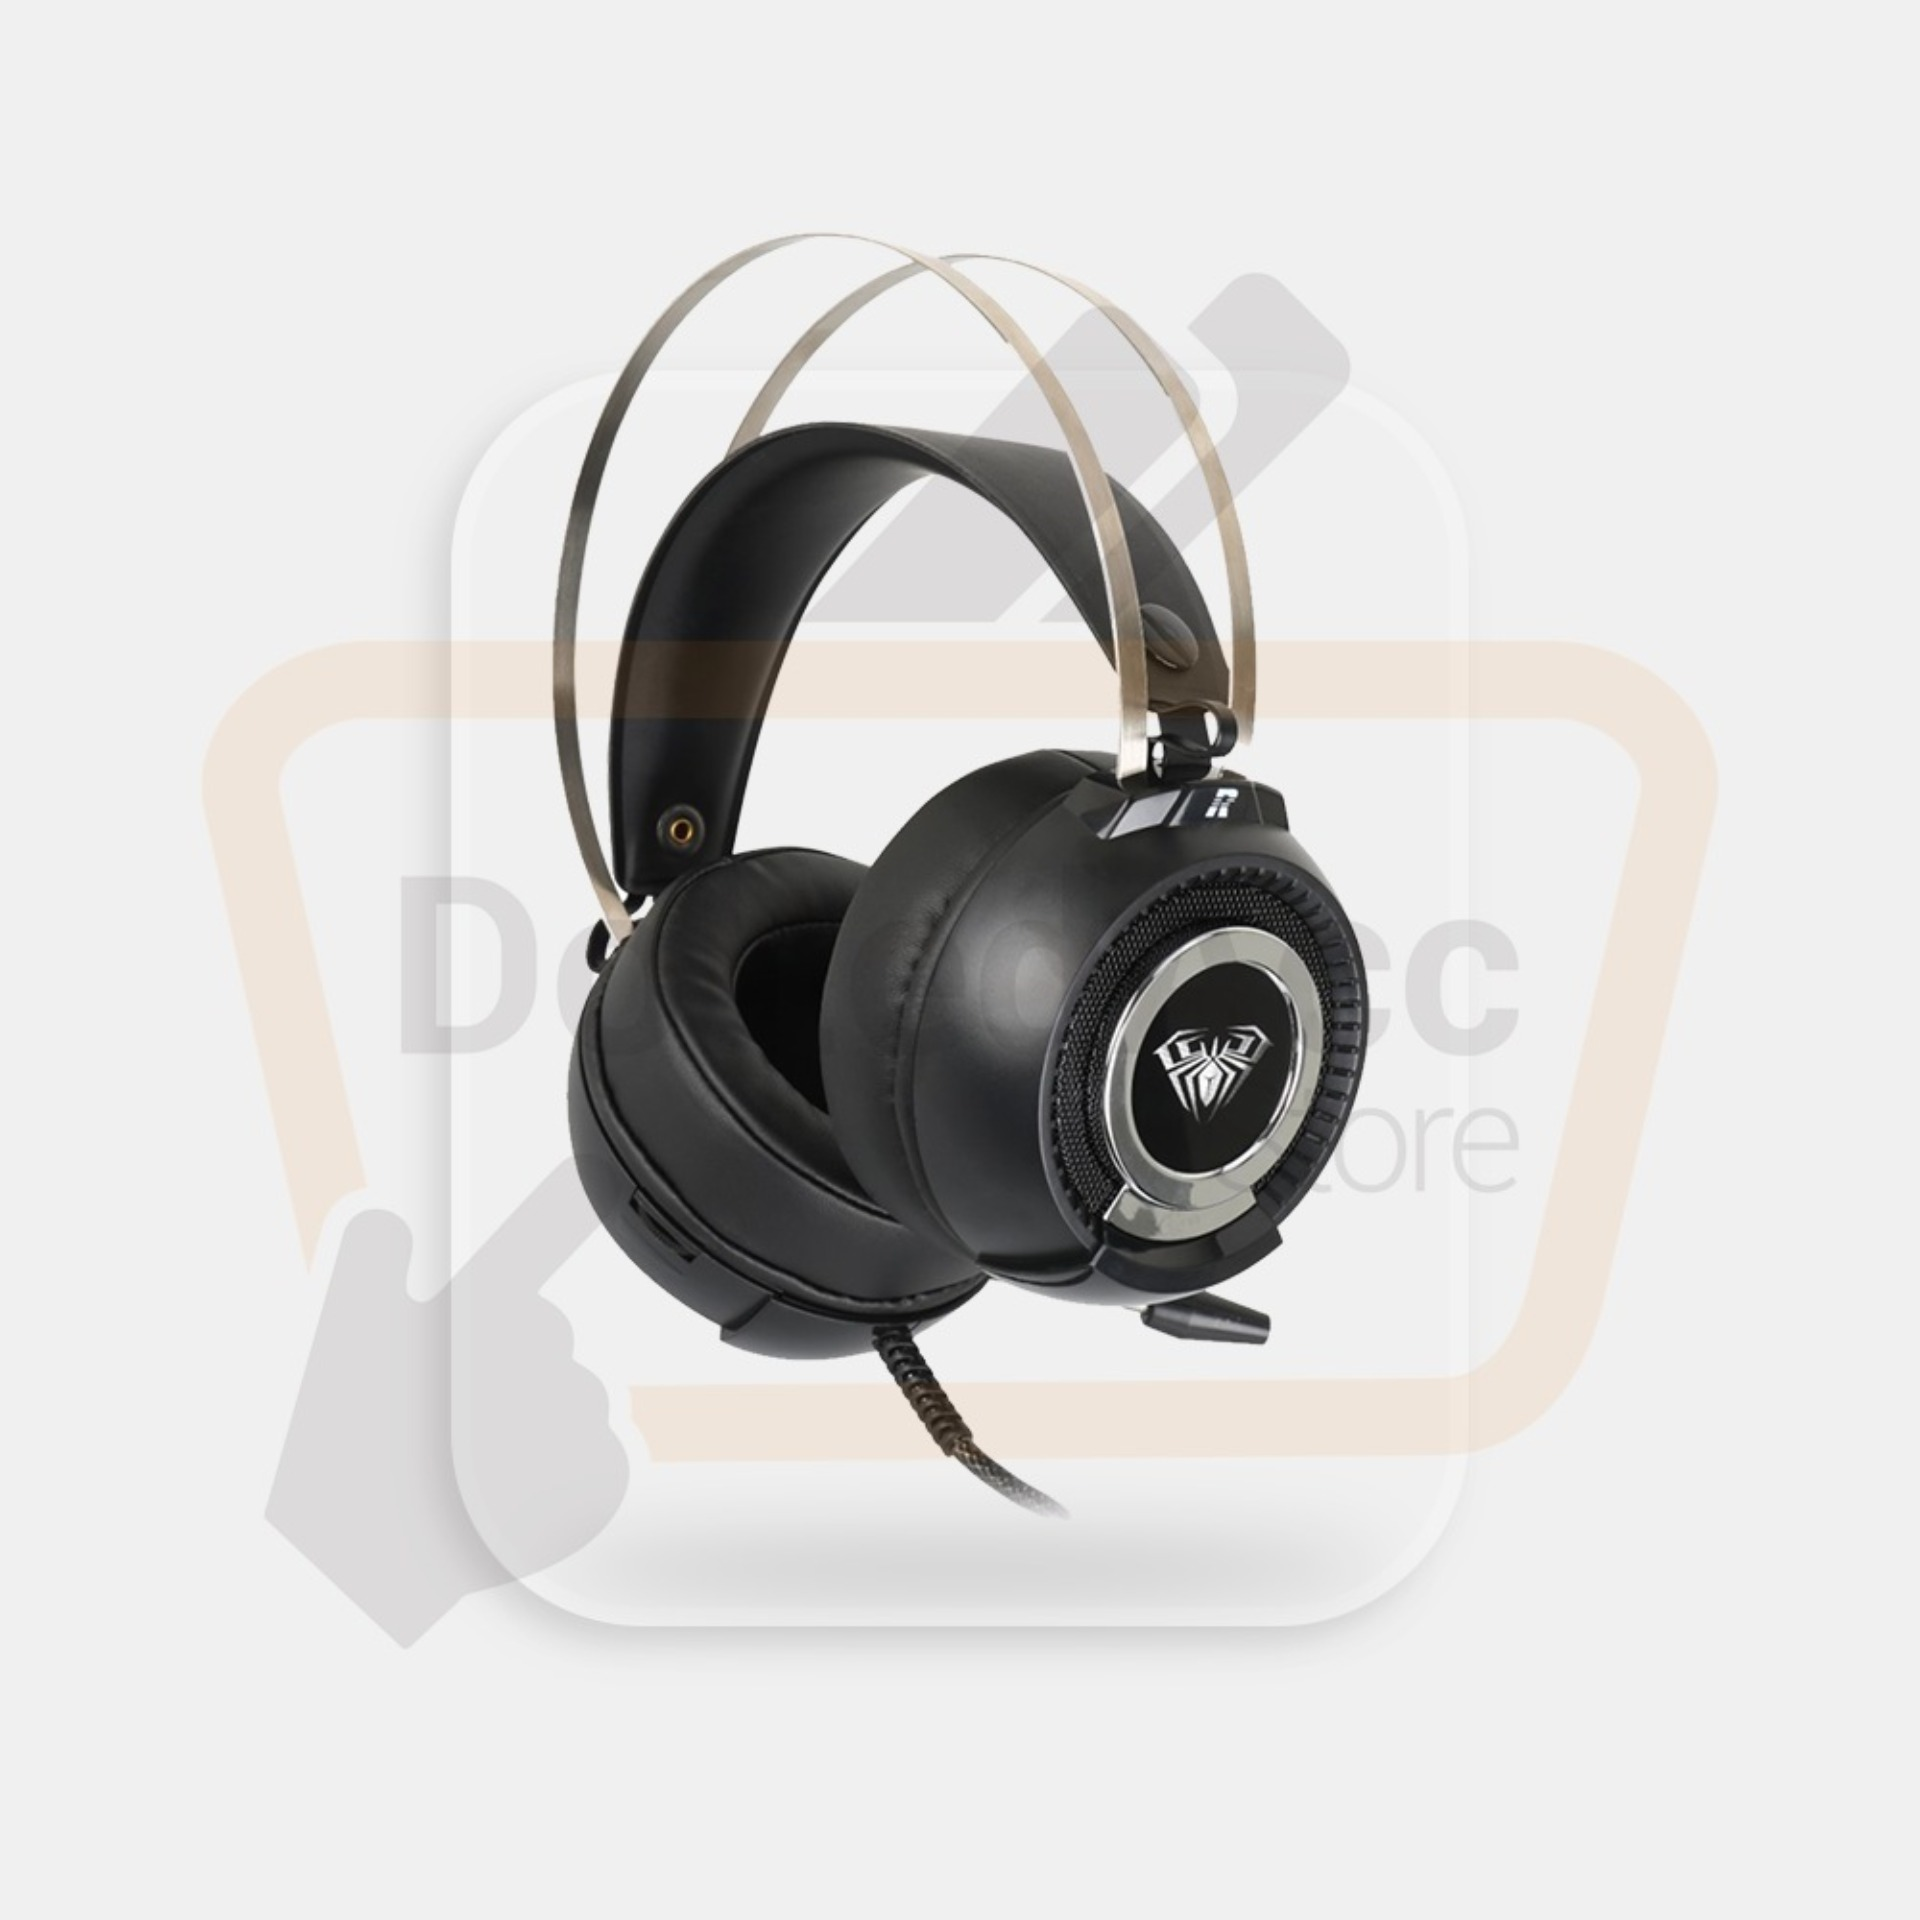 https://www.lazada.co.id/products/aula-motin-bell-vibrate-gaming-headset-power-usb-led-light-hitam-i126309704-s132766405.html